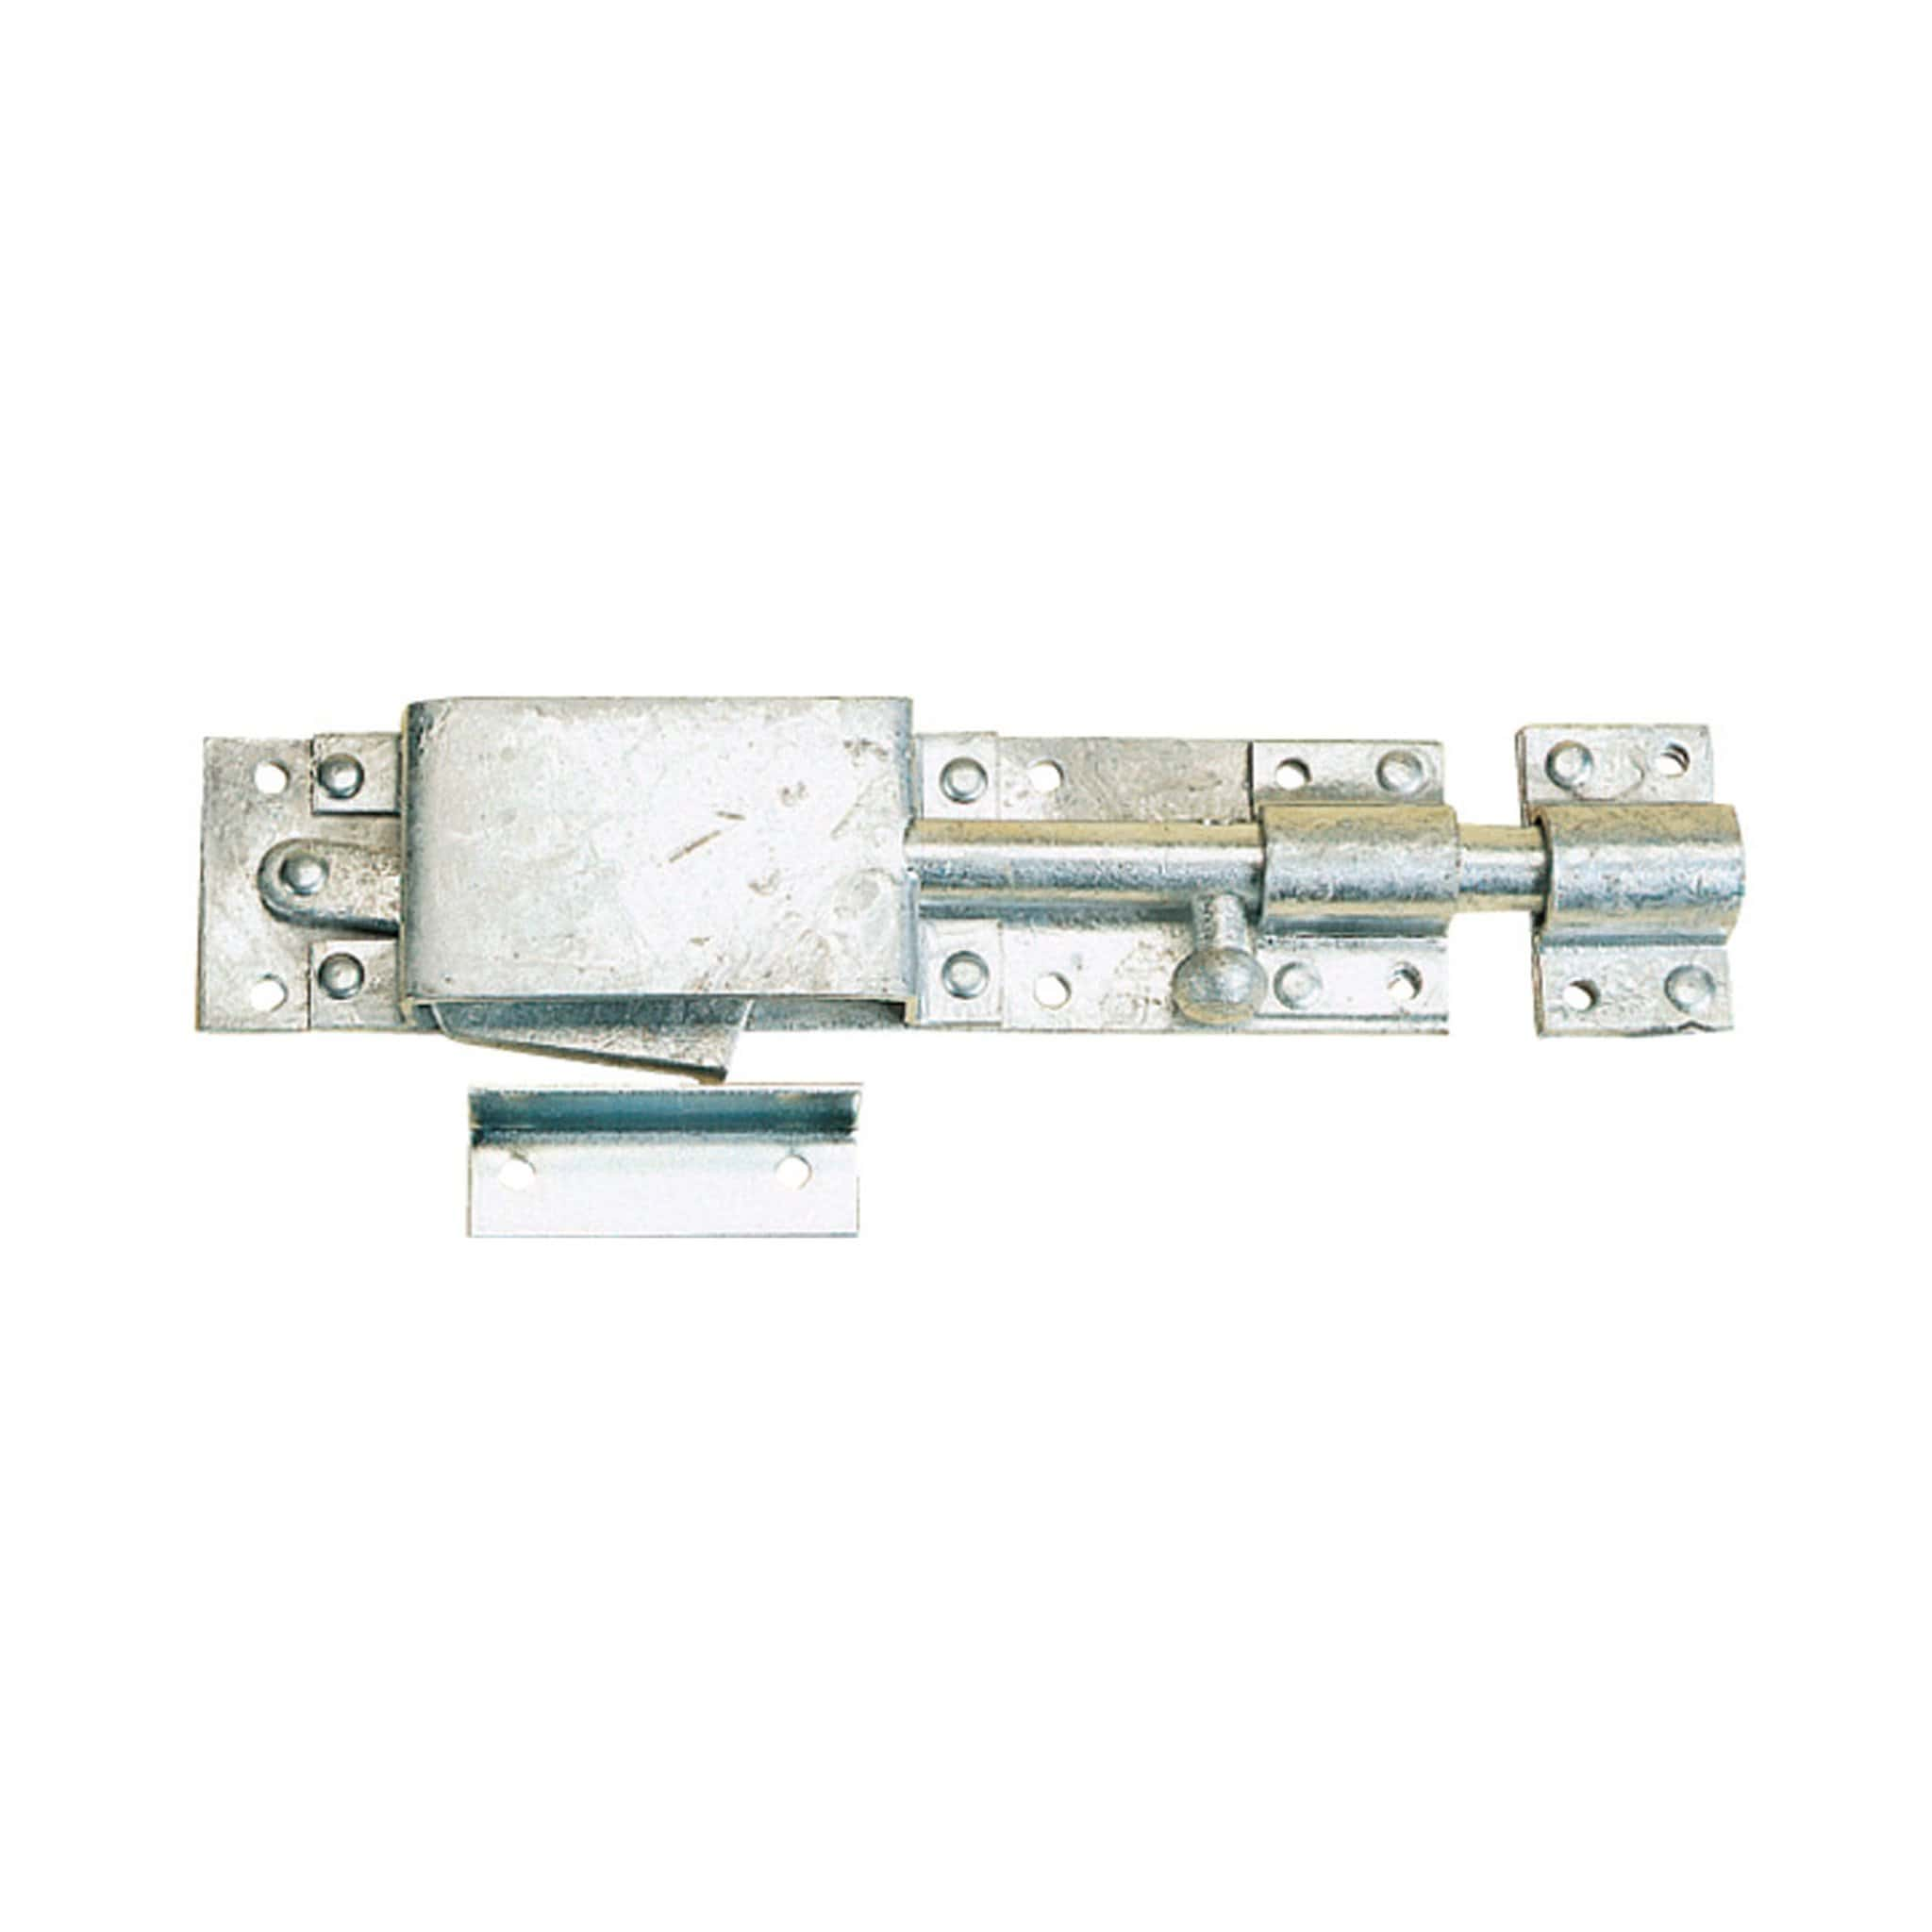 Stubbs Autolock Door Bolt 4395